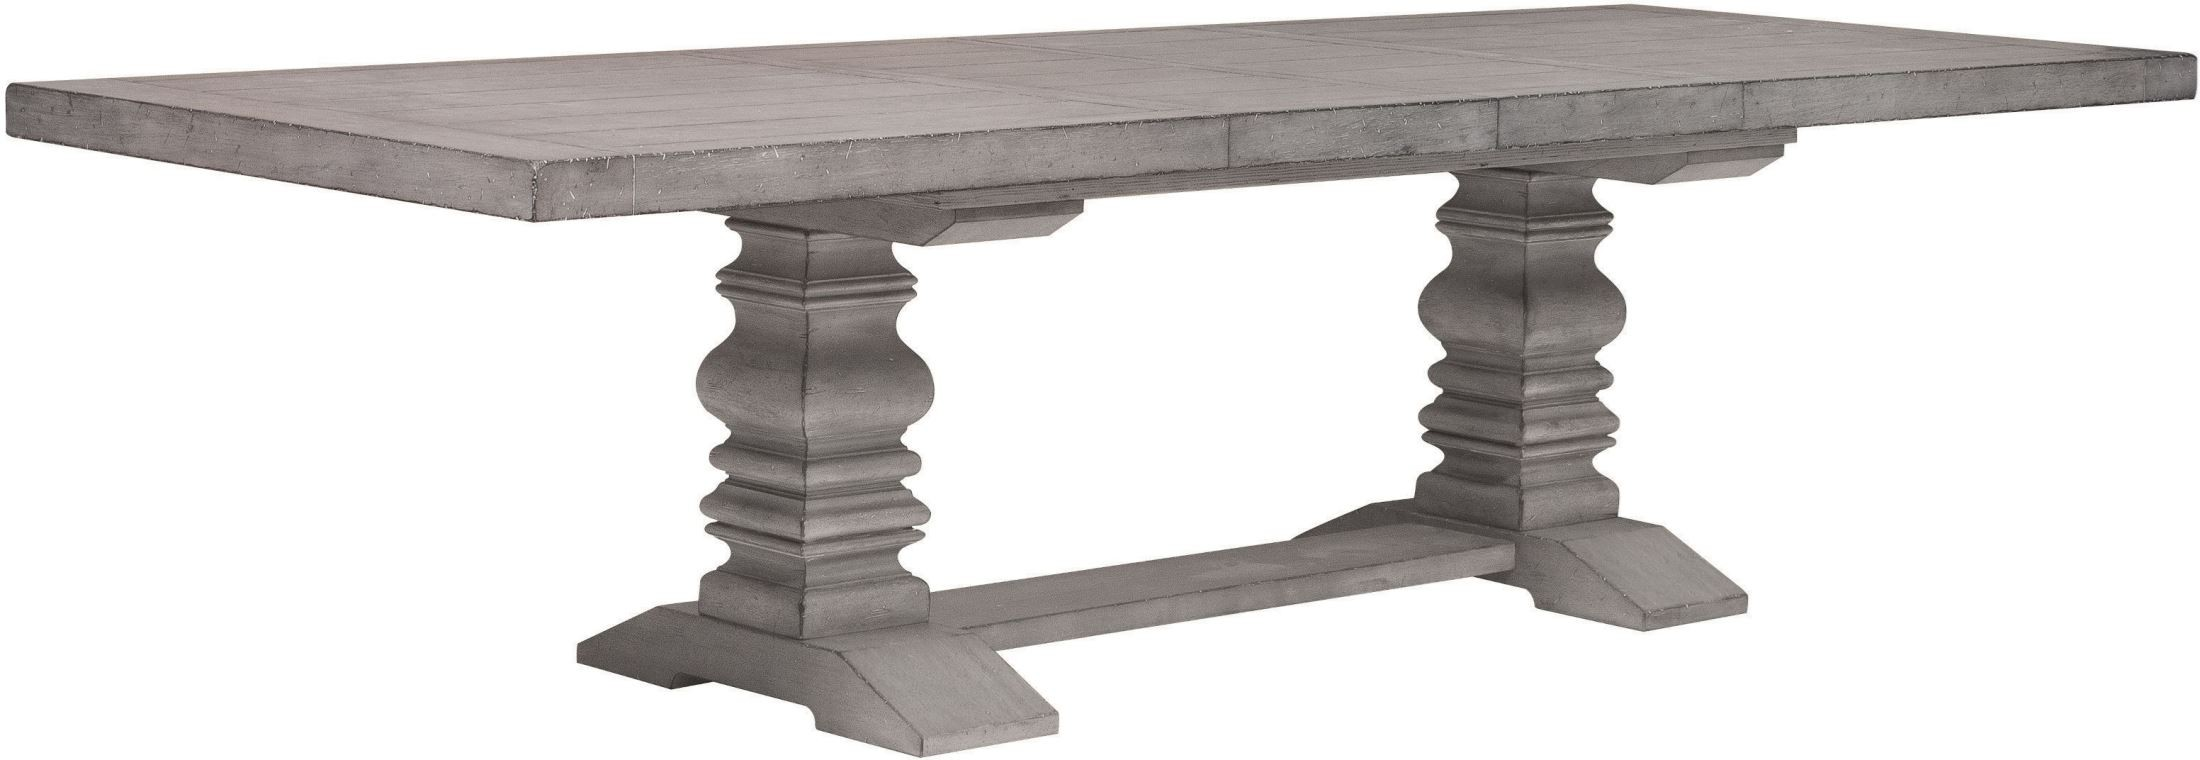 p antique tables rectangular dining home decorators pedestal sandblasted natural kingsley collection kitchen table white